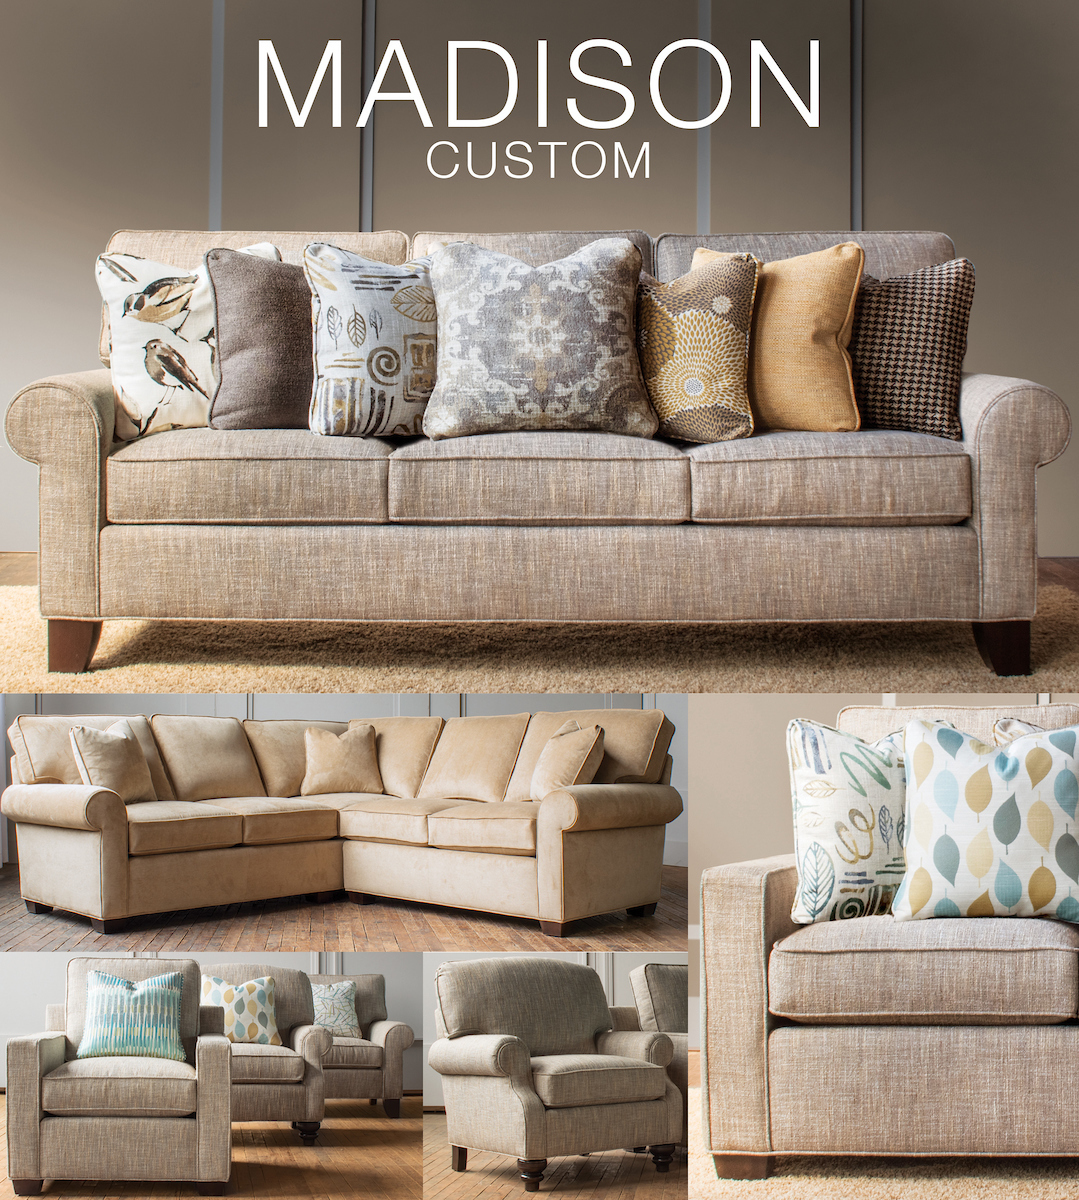 Madison Custom Design